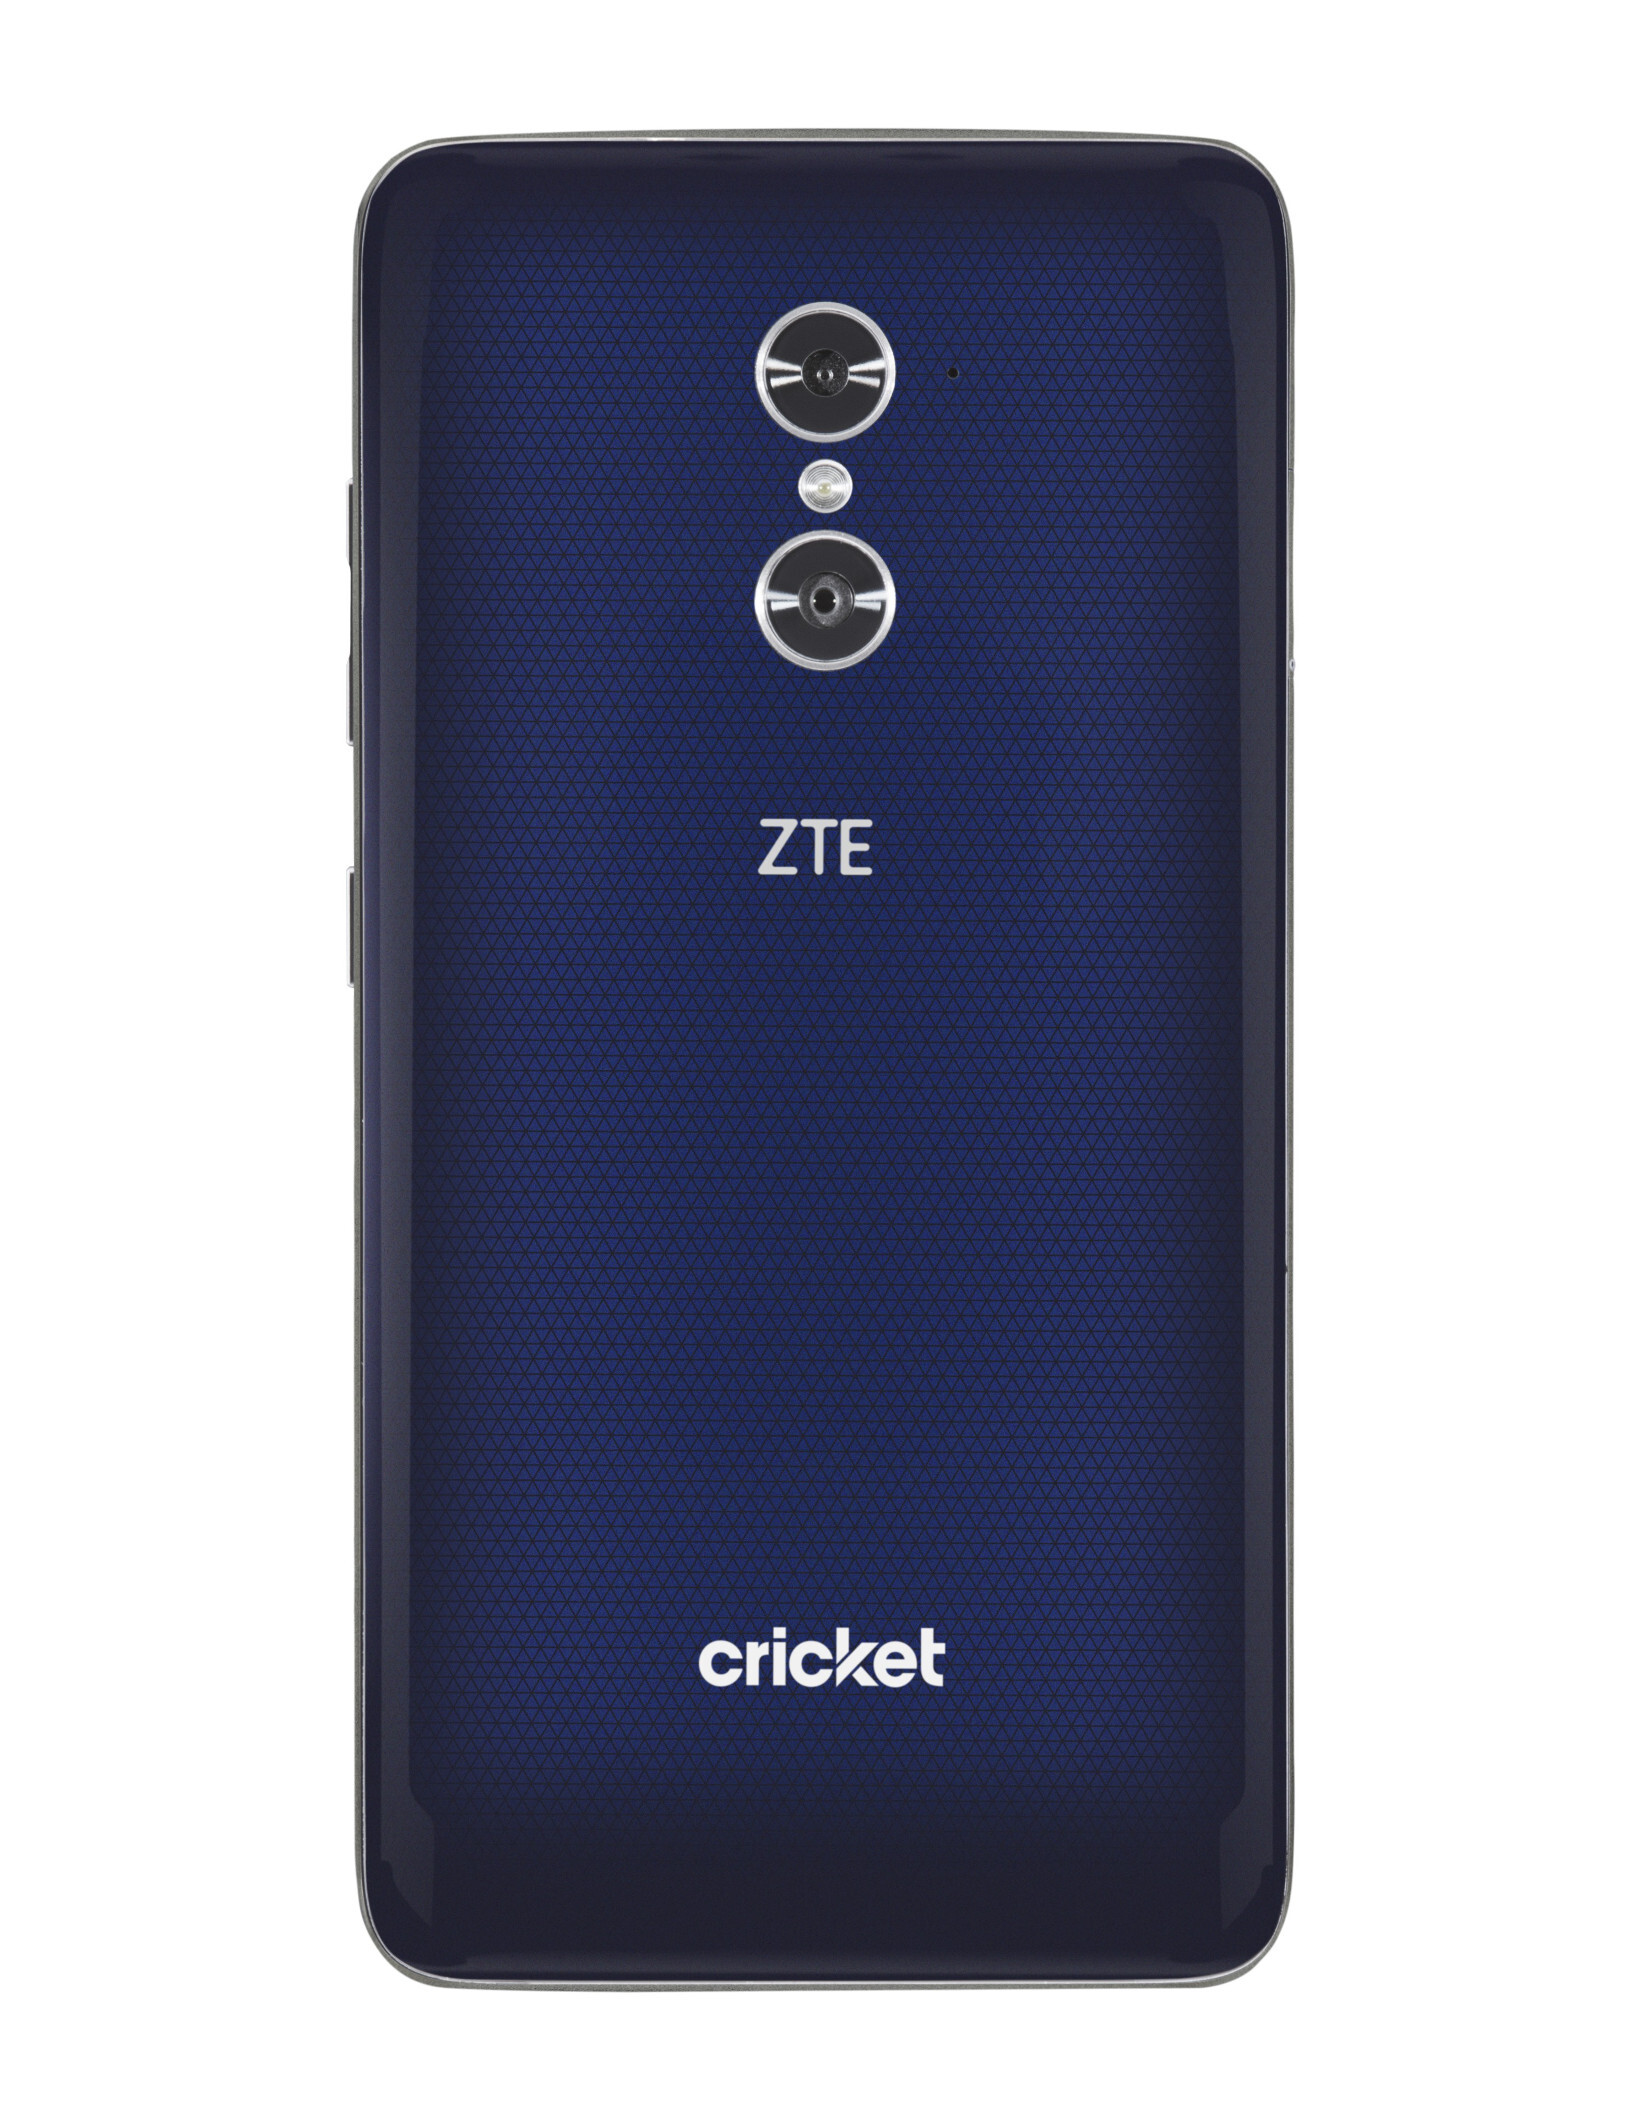 other thing: zte grand x max 2 storage Pro